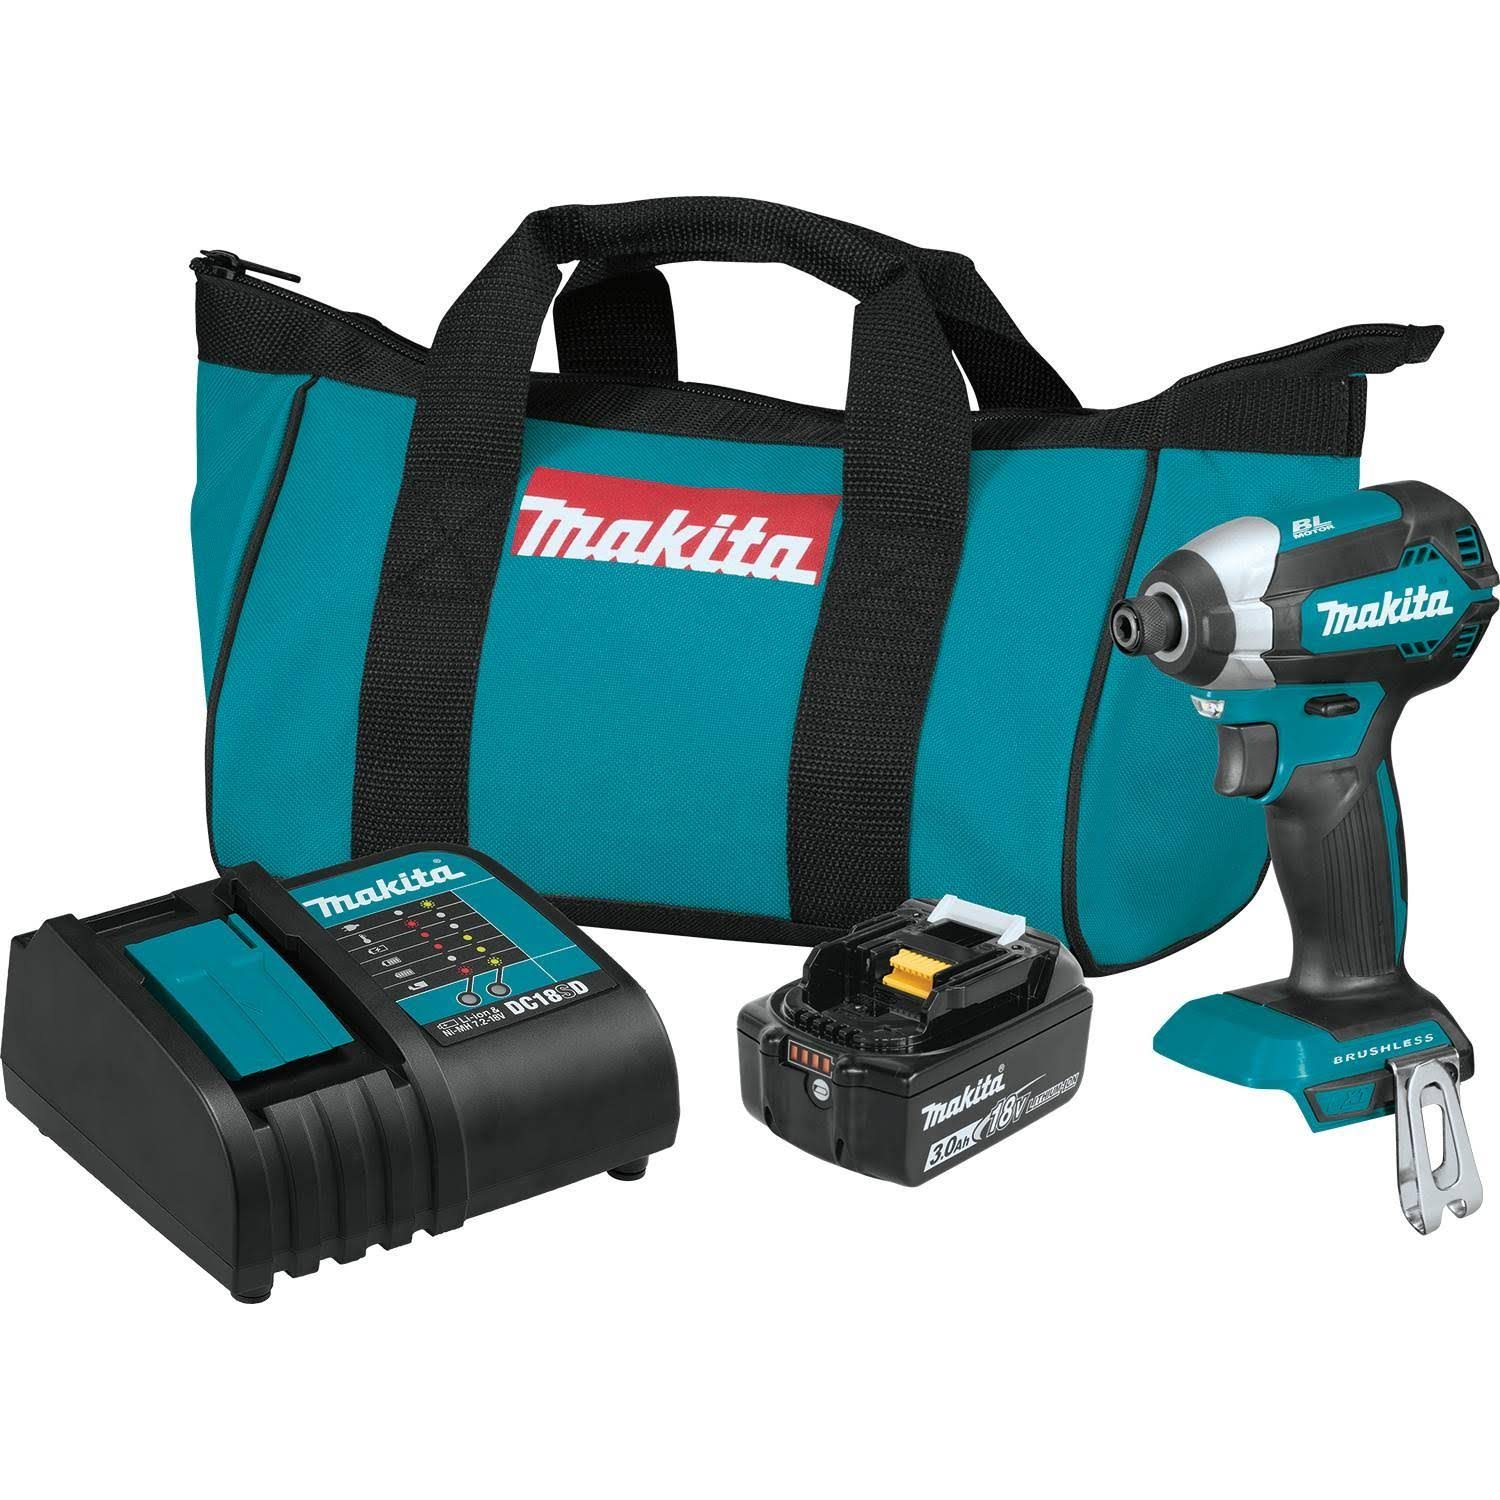 Makita Brushless Cordless Impact Driver Kit - with 18v LXT Lithium-Ion Battery